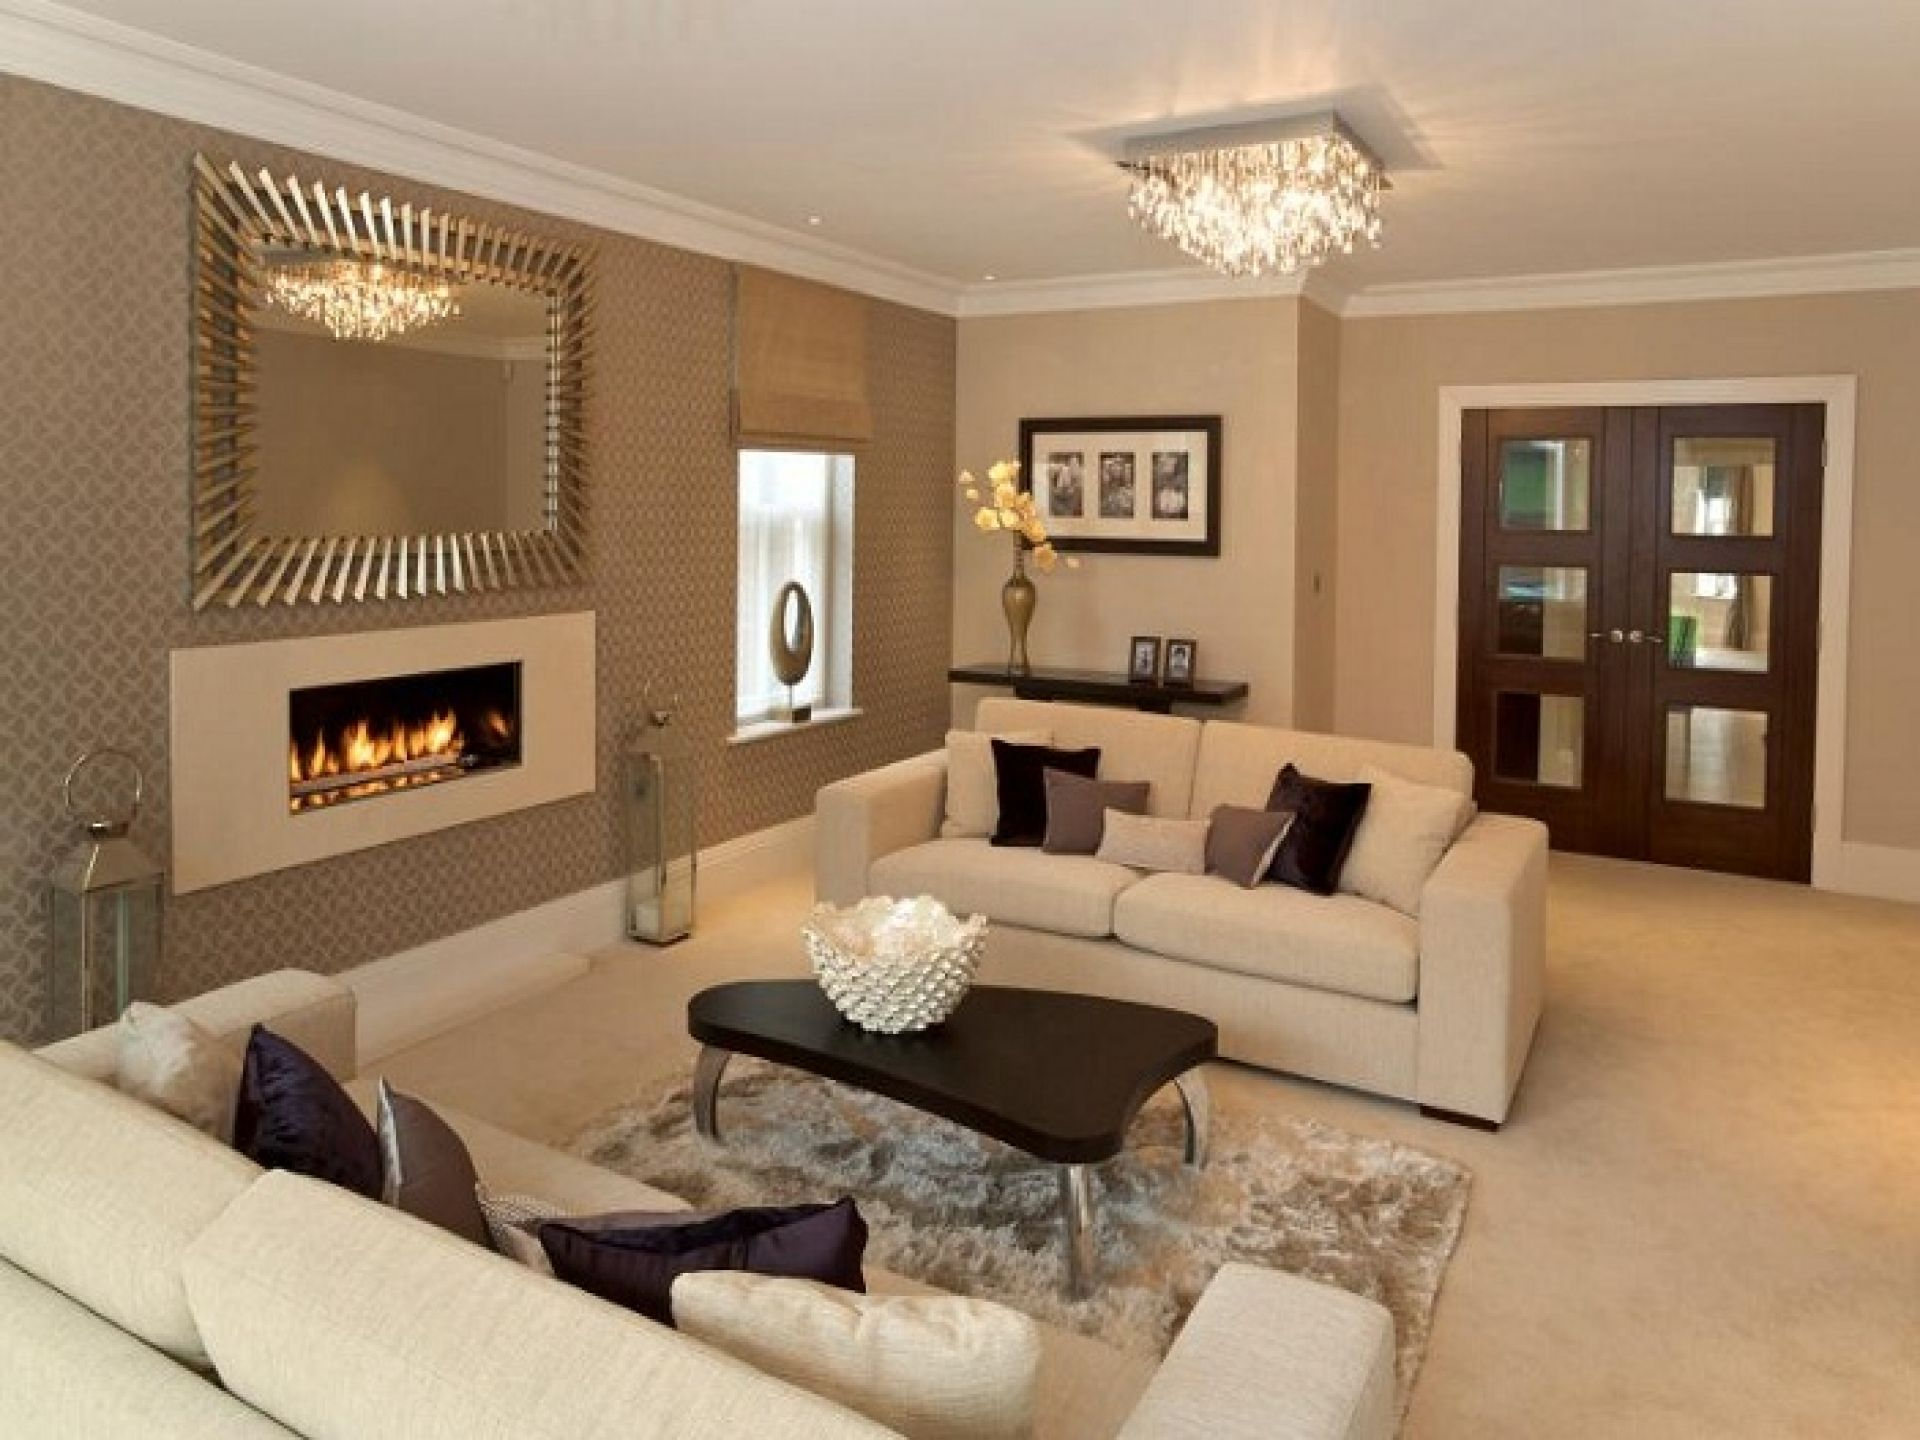 living room color ideas for brown furniture top 3 choices on popular paint colors for interior walls id=27793